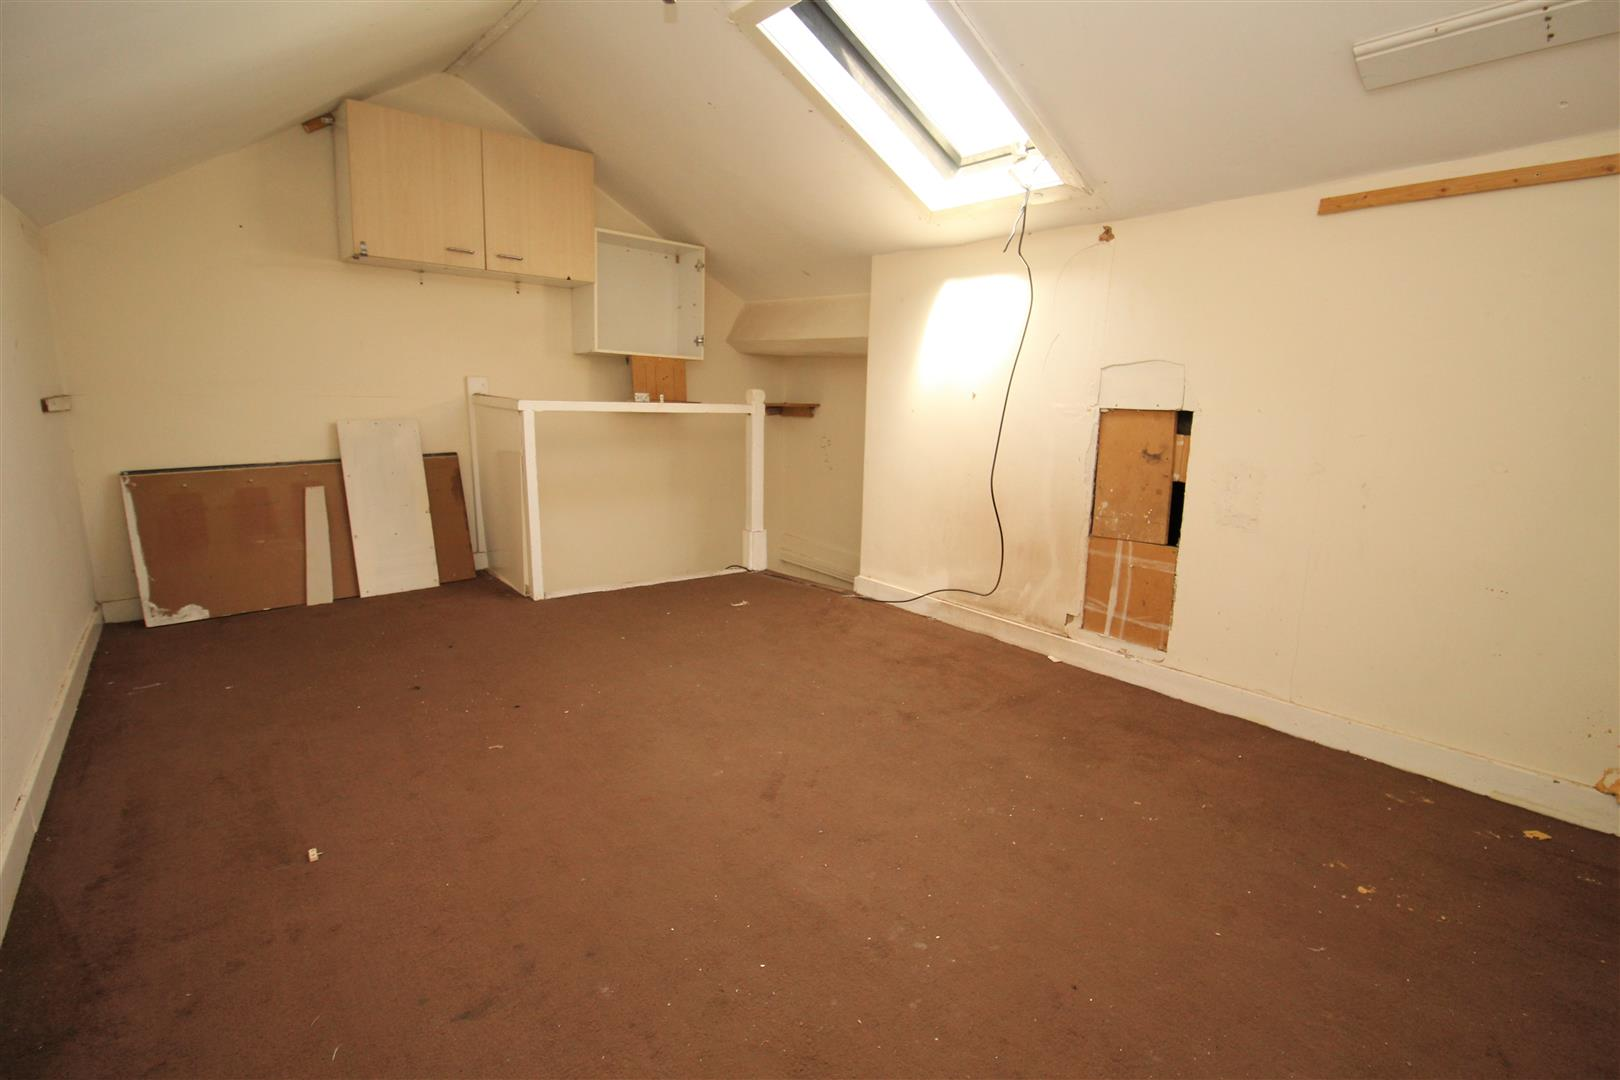 2 Bedrooms, House - Mid Terrace, Warbreck Avenue, Liverpool